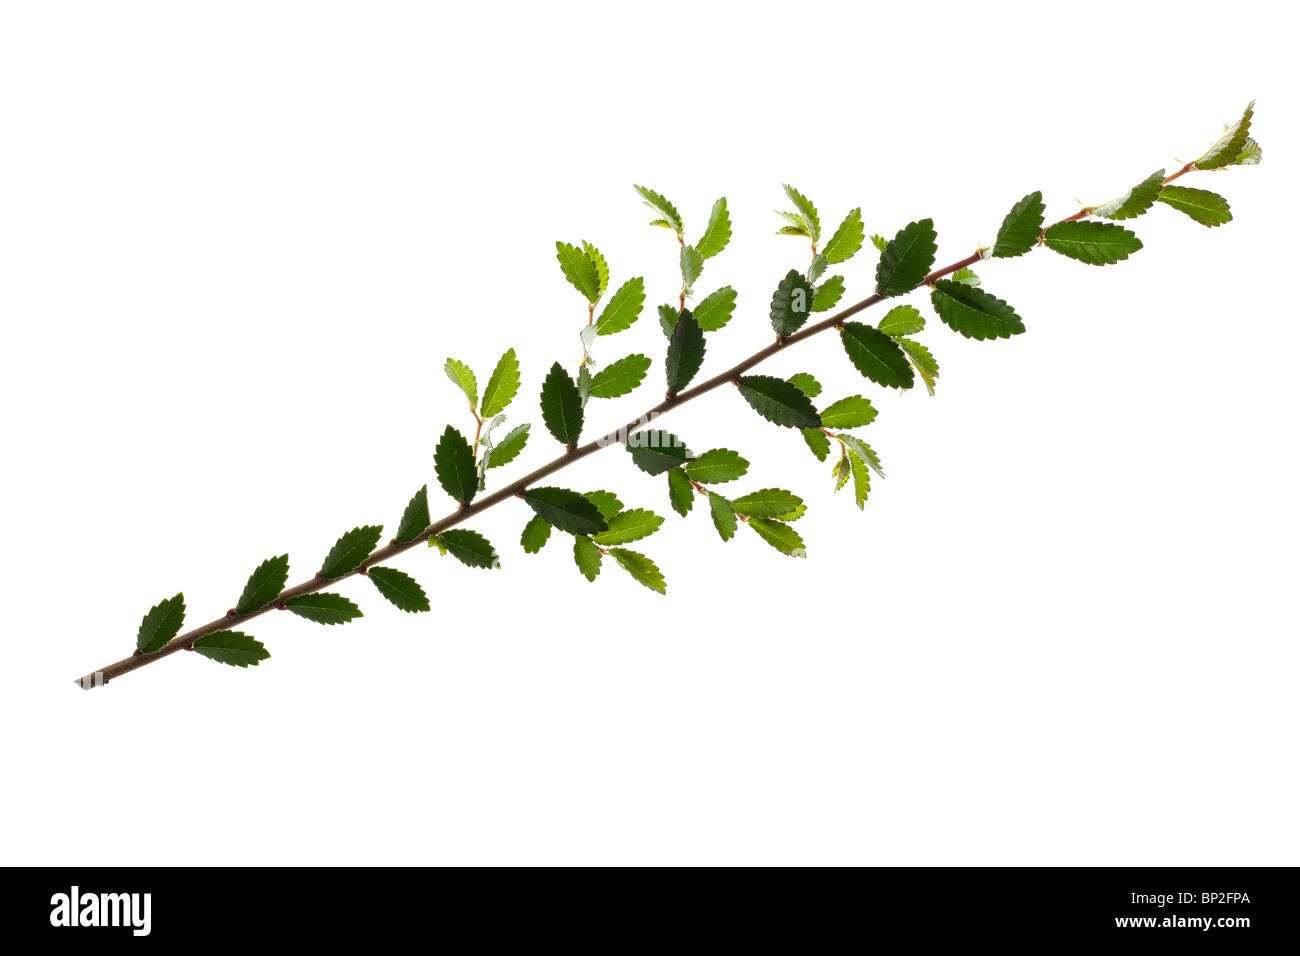 Leaves and branch from a Japanese yew tree - Stock Image